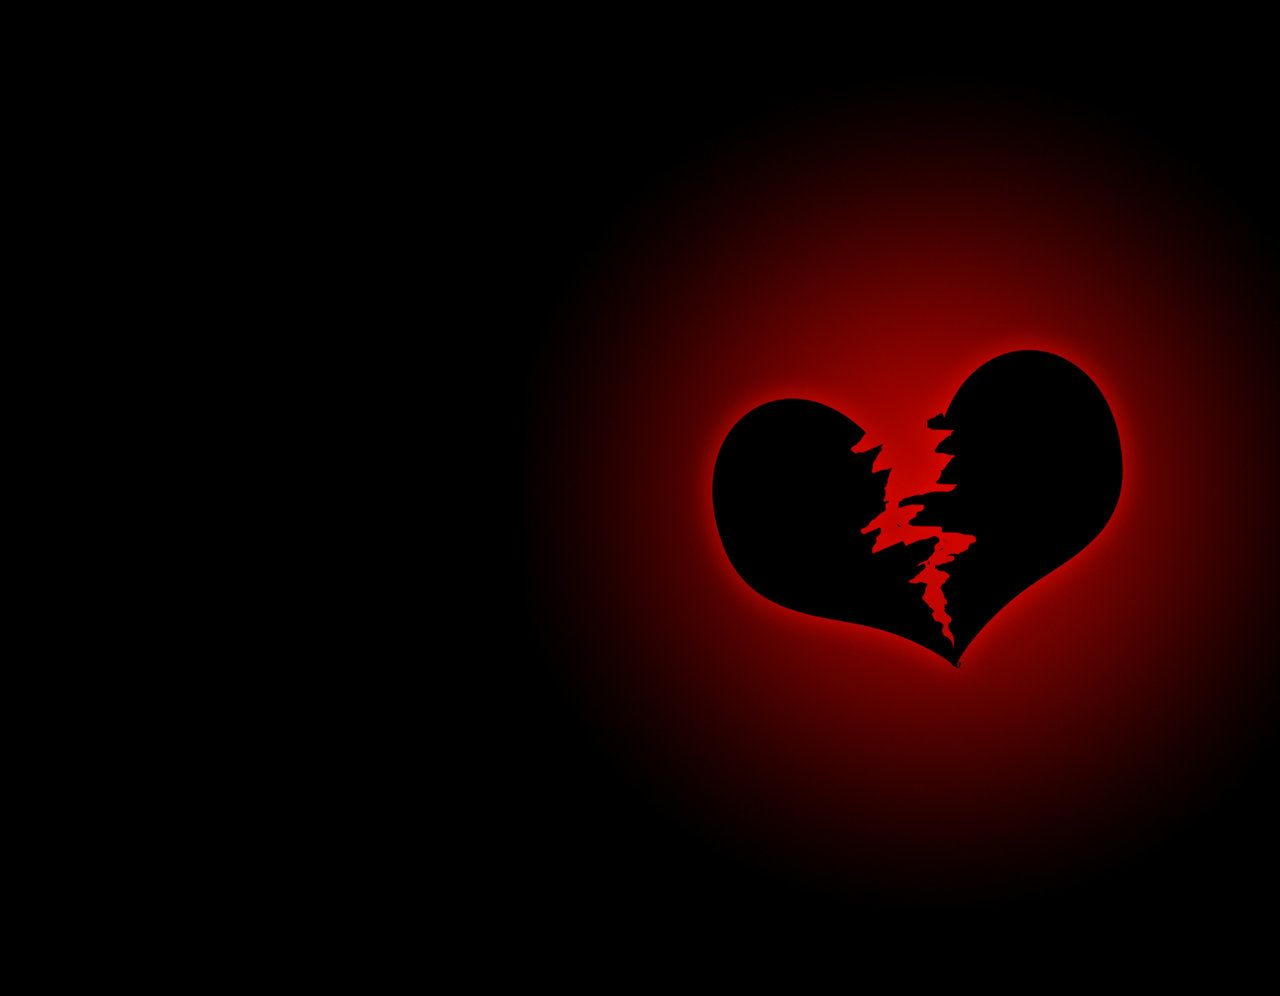 Love Vale Wallpaper : Broken hearts wallpaper #97985 at Love Wallpapers 1080p ...